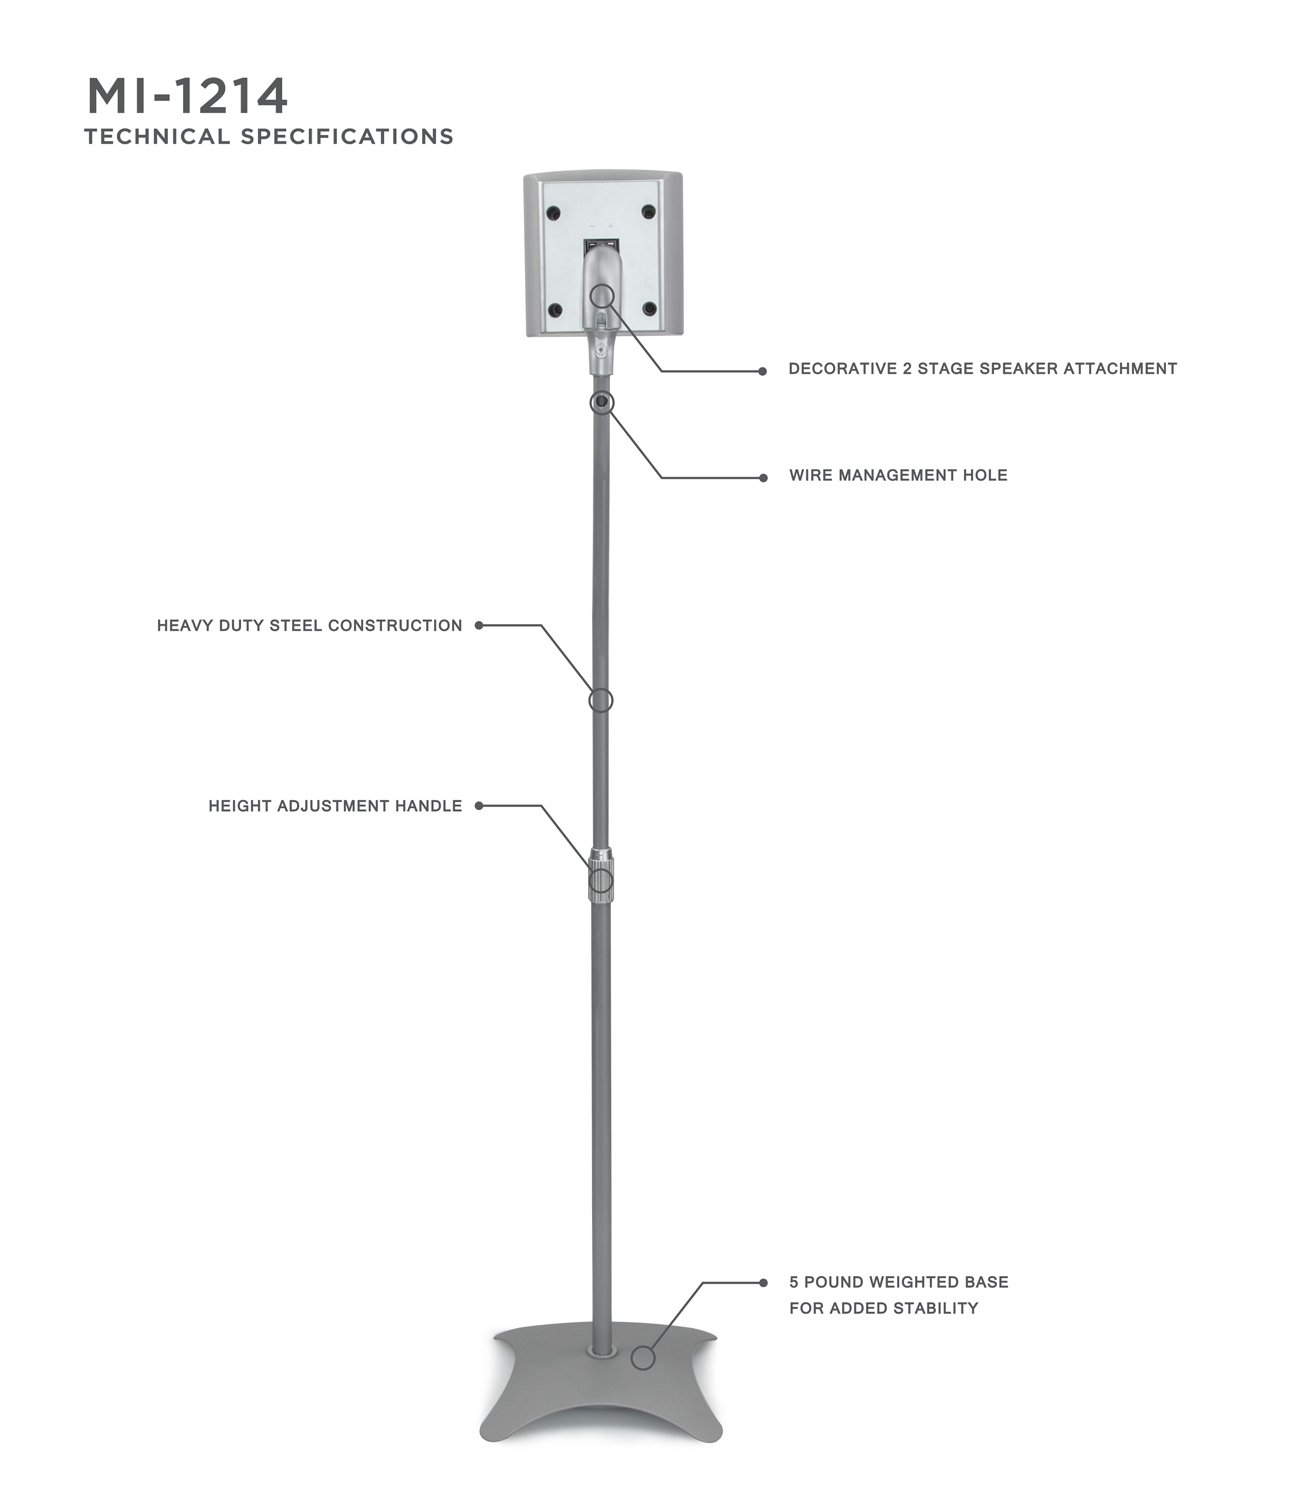 Mount It Speaker Stands For Surround Sound And Home Figure Diagram Showing The Placement Of Speakers Theater Floor Standing Height Adjustable Mounts Two Pairs 10 Lb Capacity